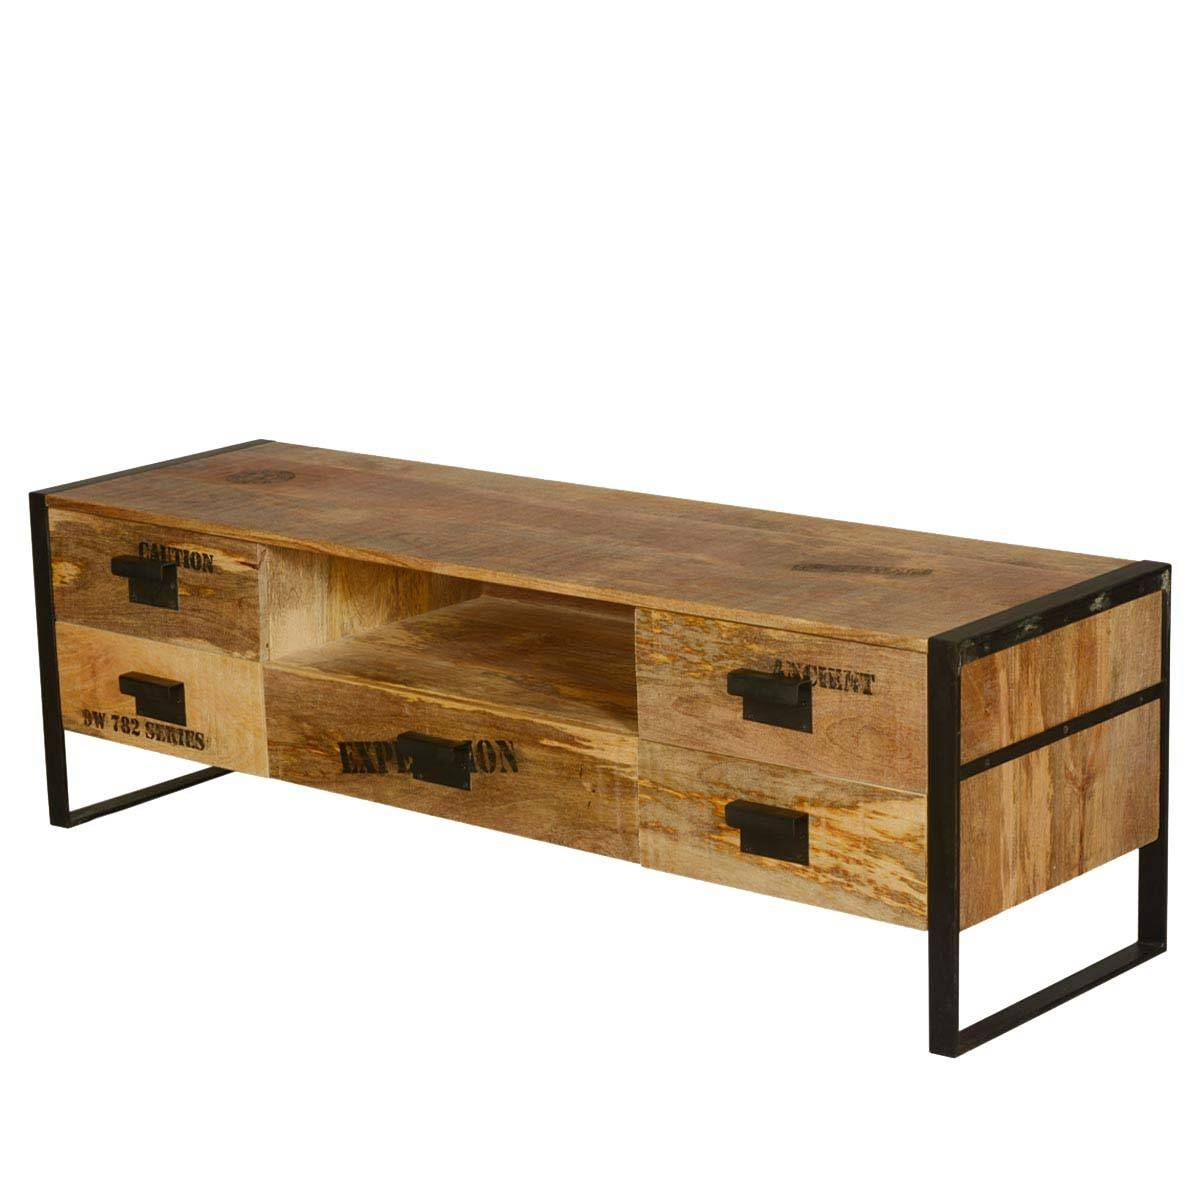 Expedition Mango Wood & Iron Tv Stand Media Cabinet with regard to Mango Wood Tv Cabinets (Image 8 of 15)